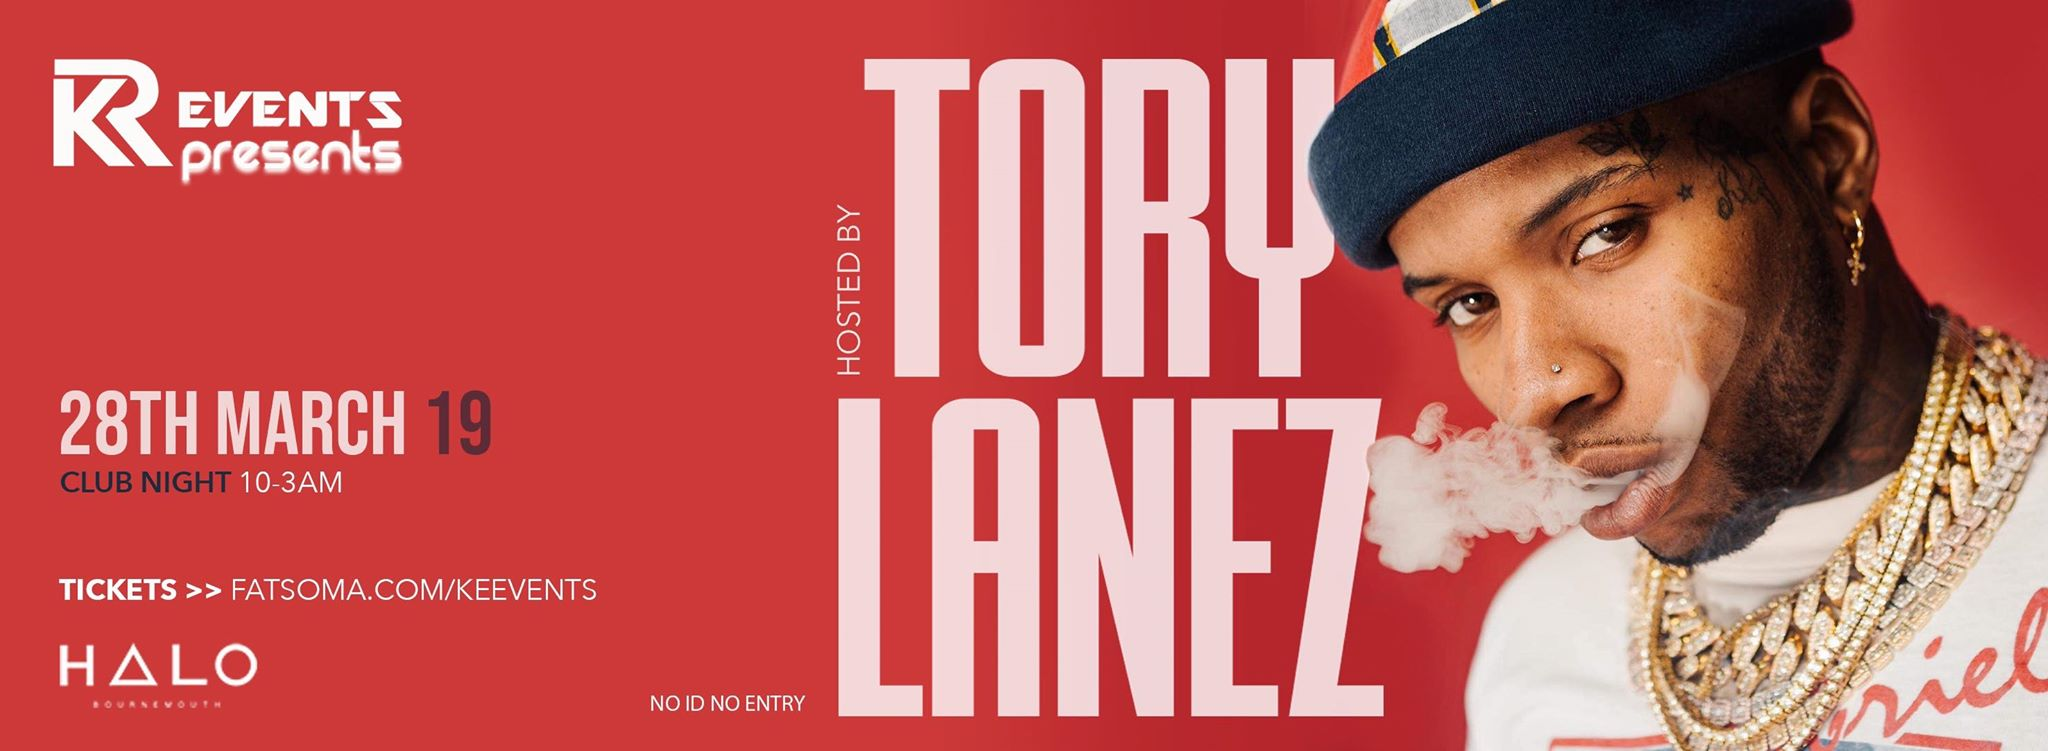 KR Events presents Tory Lanez